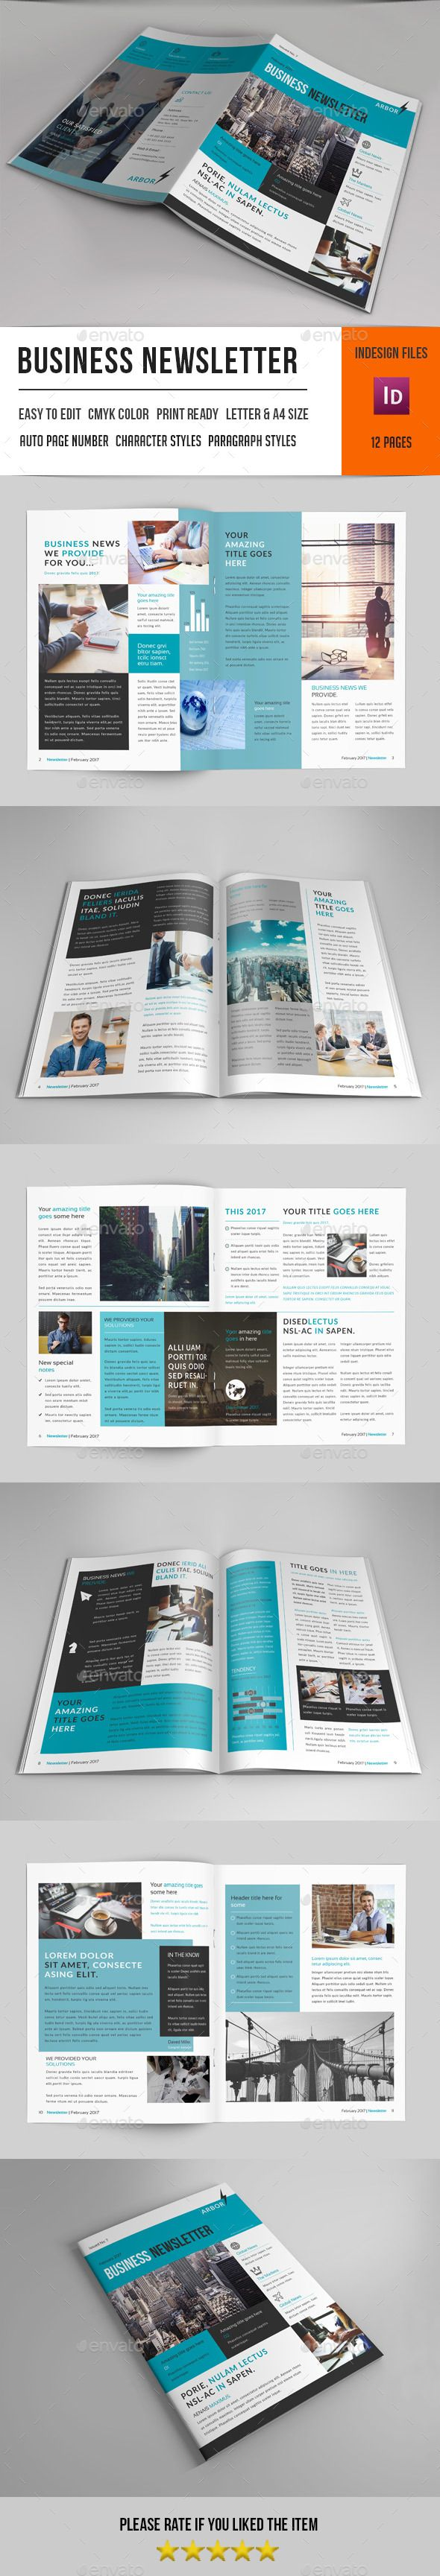 Business Newsletter Template InDesign INDD 316 best